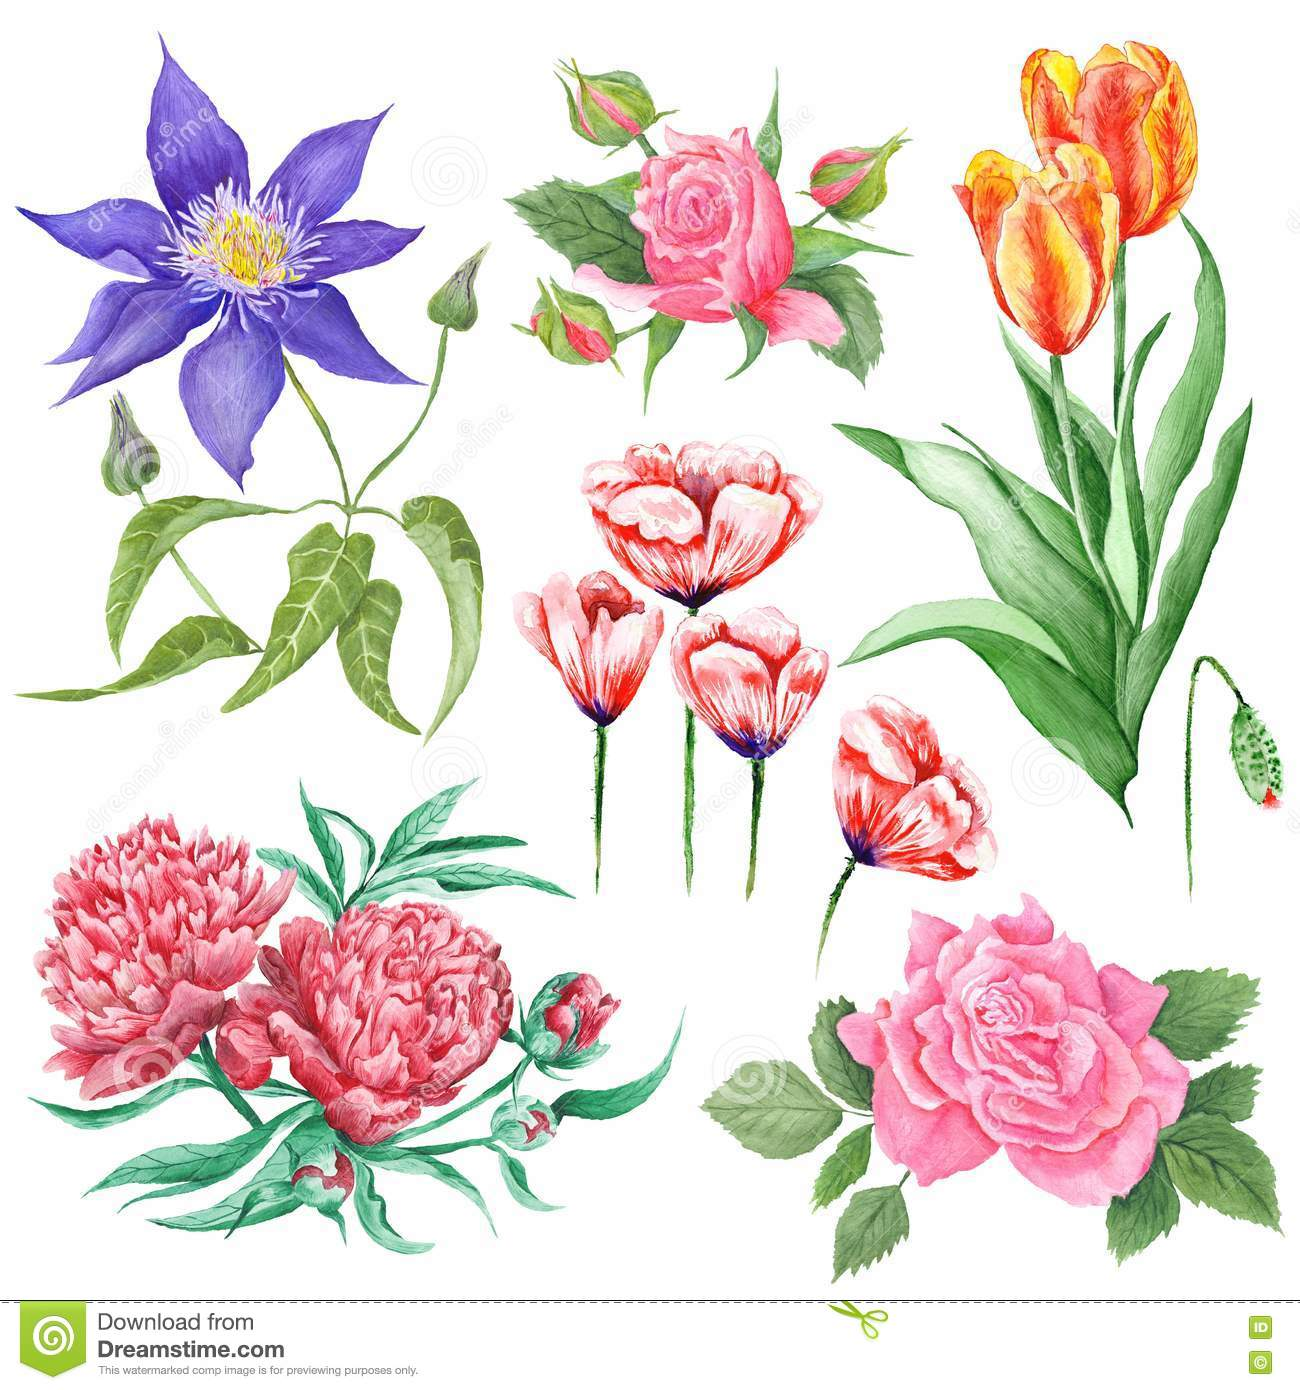 Watercolor Botanical Illustrations Of Summer Flowers Stock.